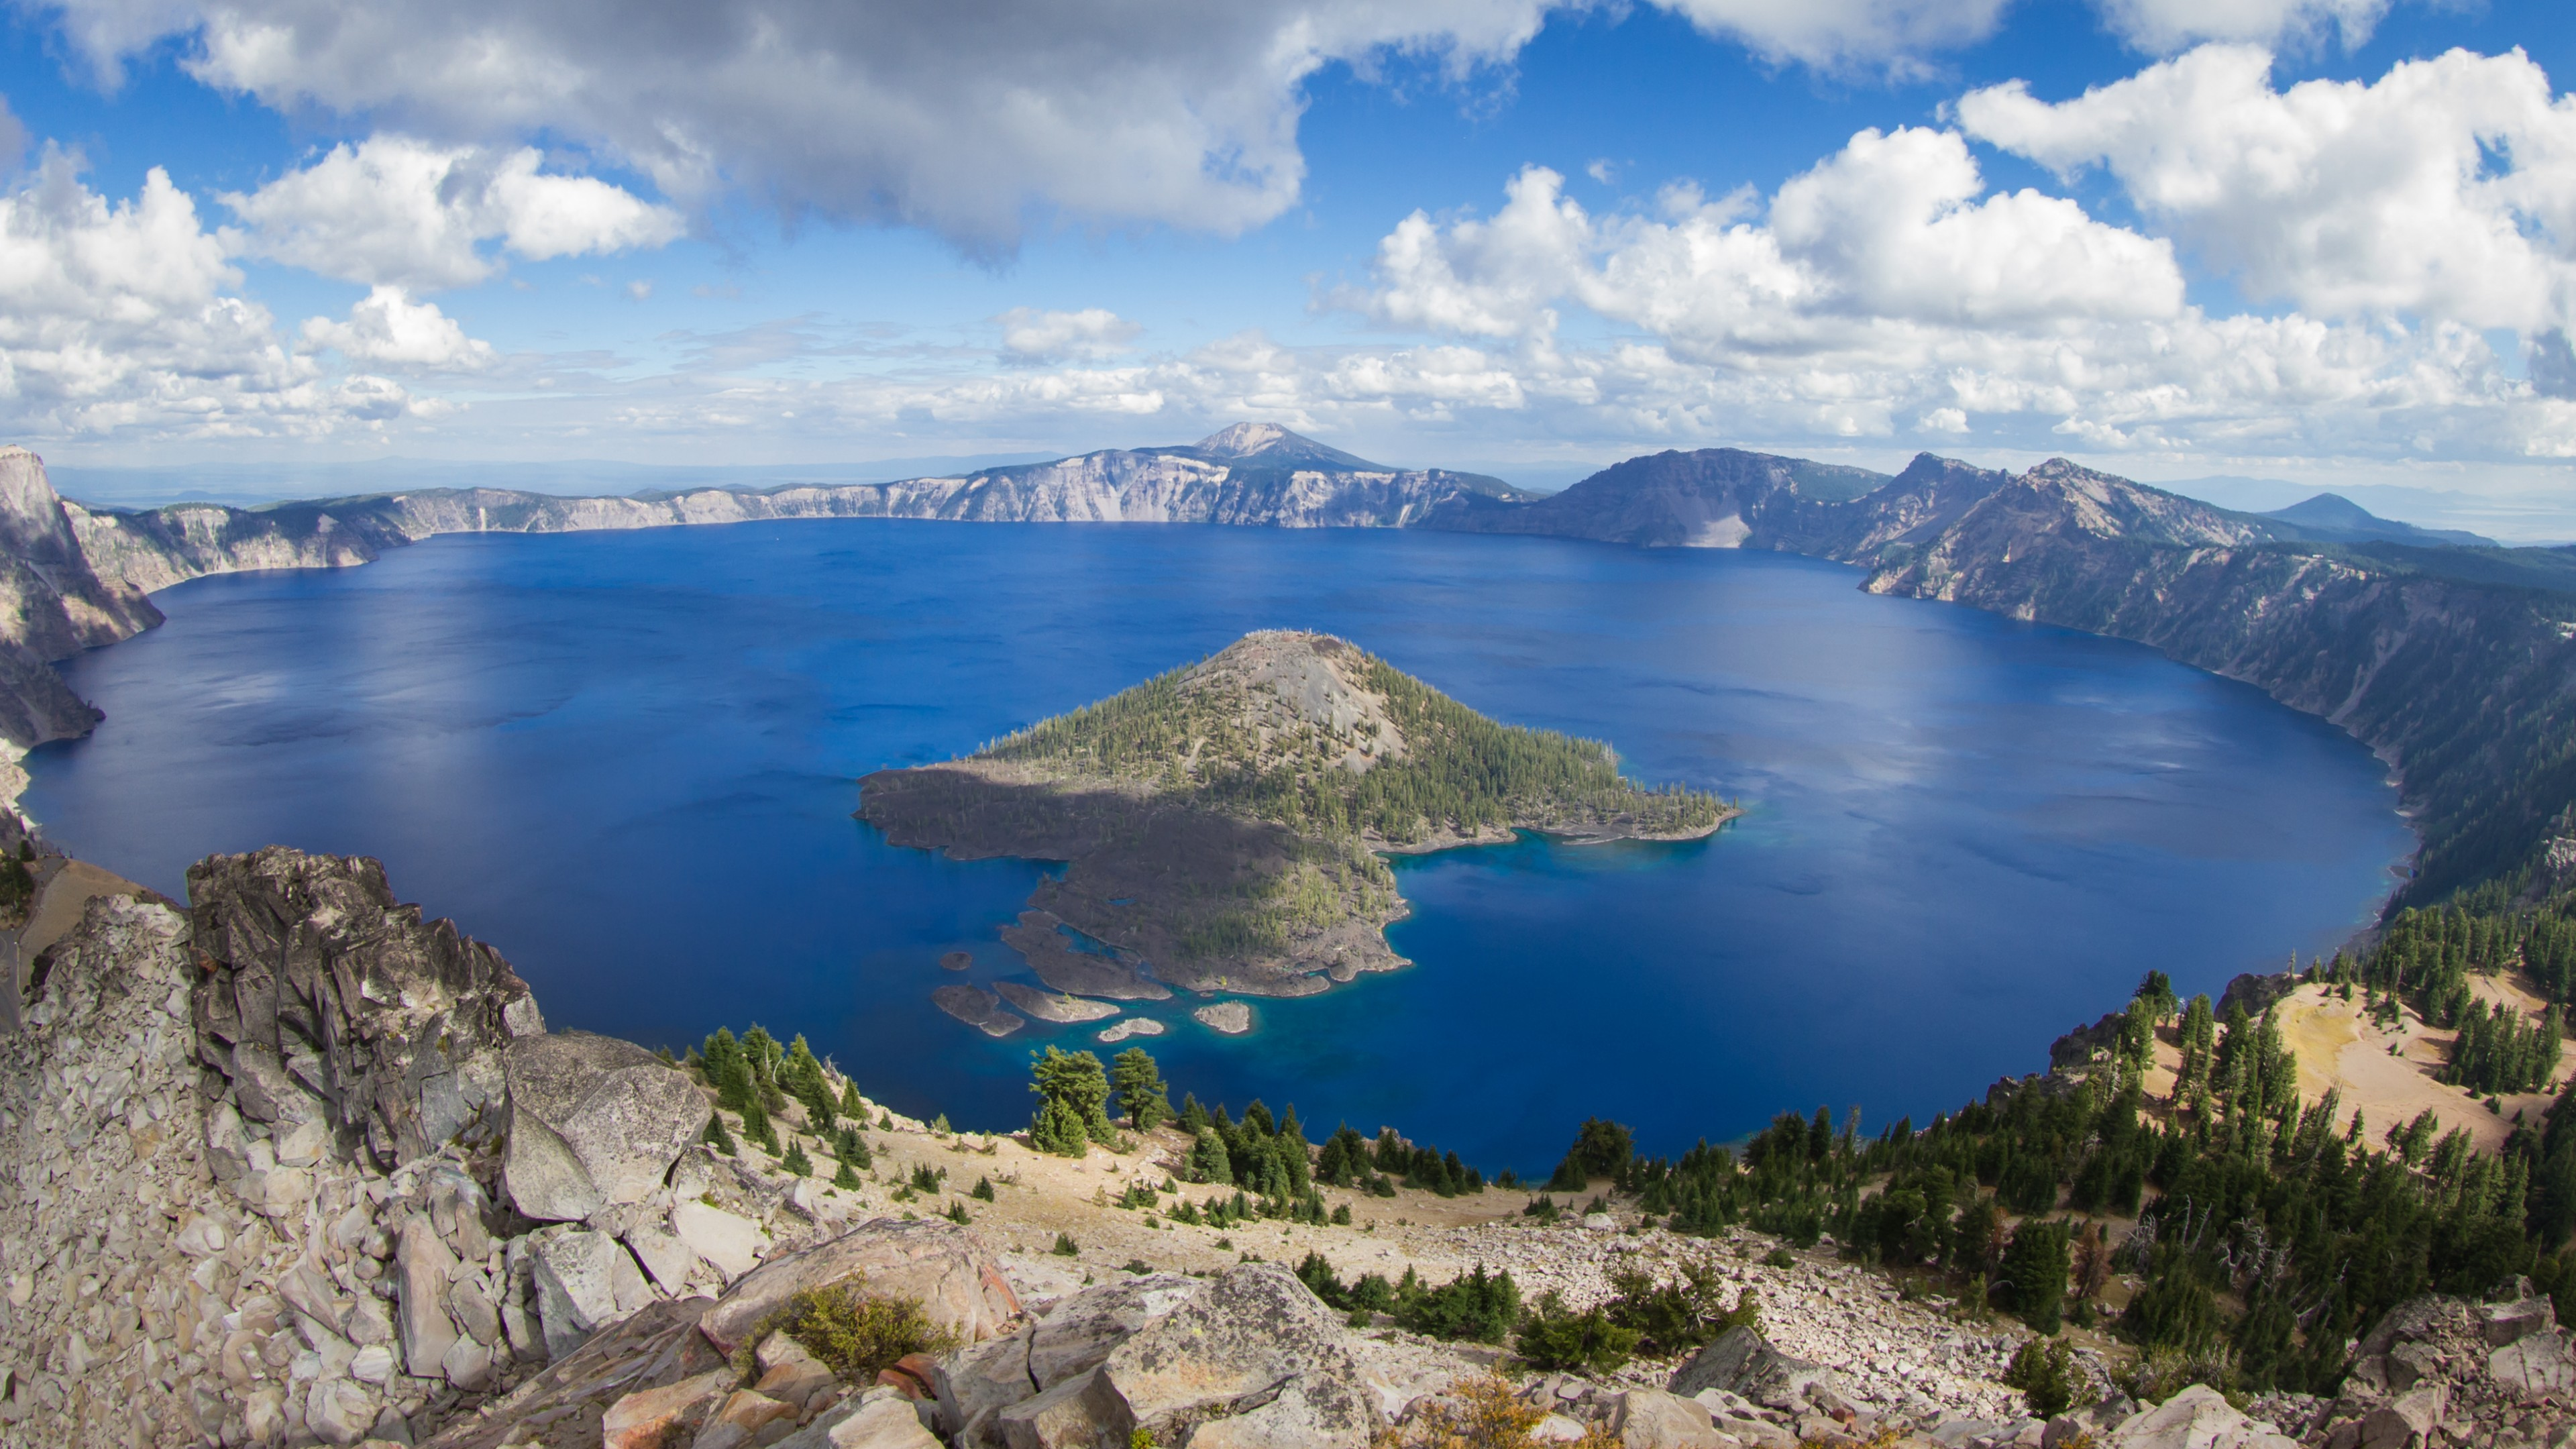 wallpaper crater lake, usa, mountain, nature, 4k, nature #15449